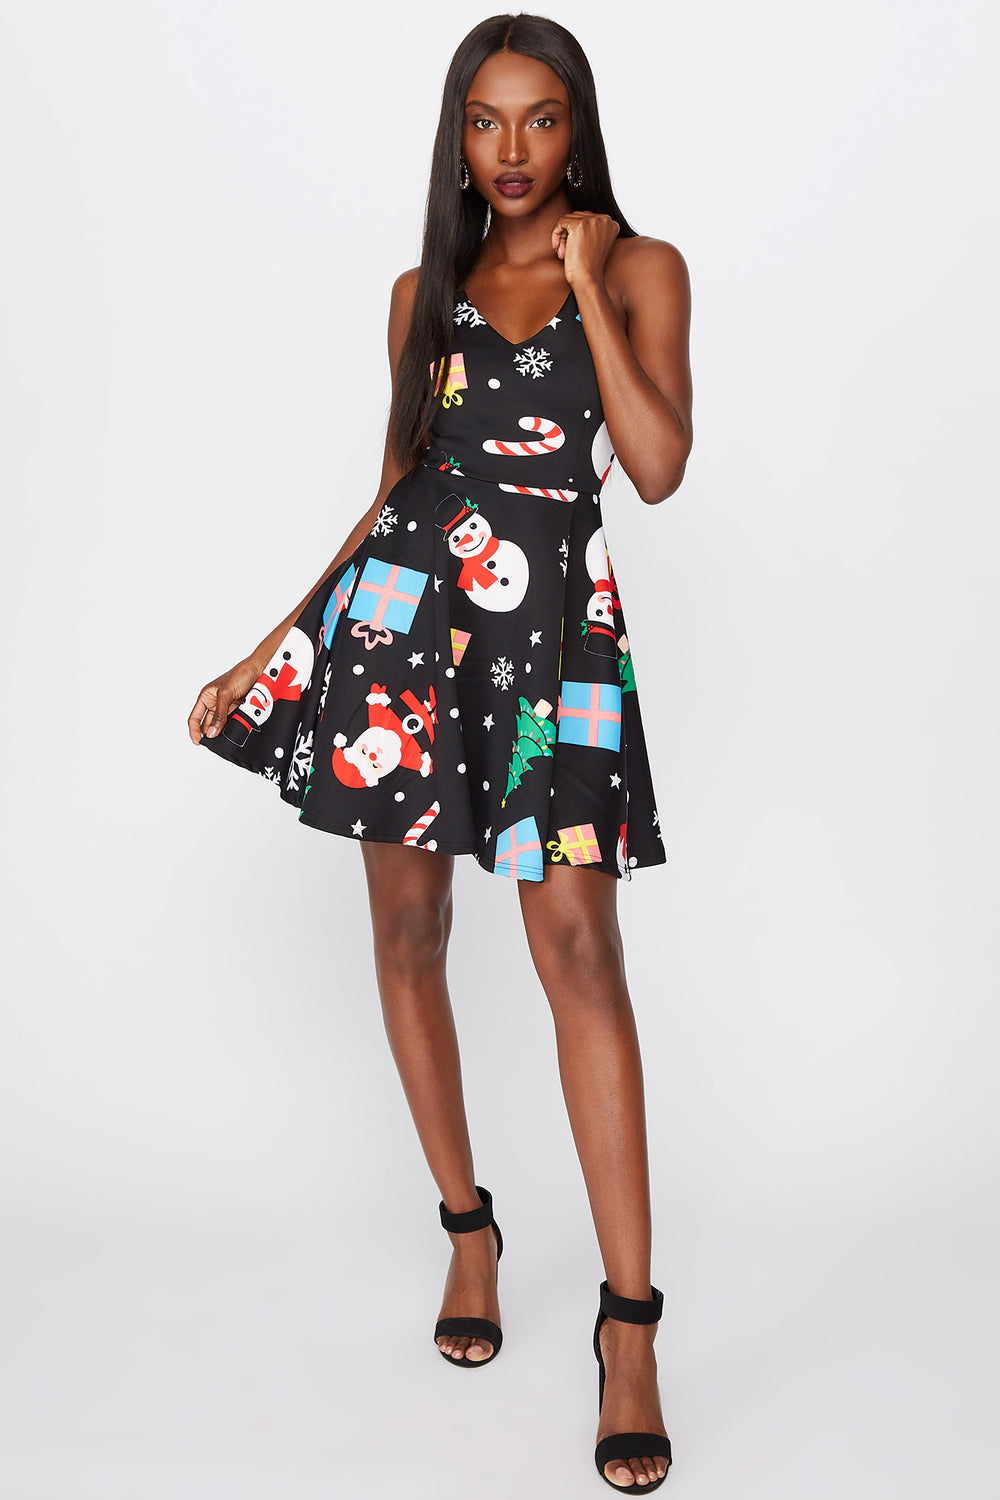 Ugly Christmas Skater Dress Black